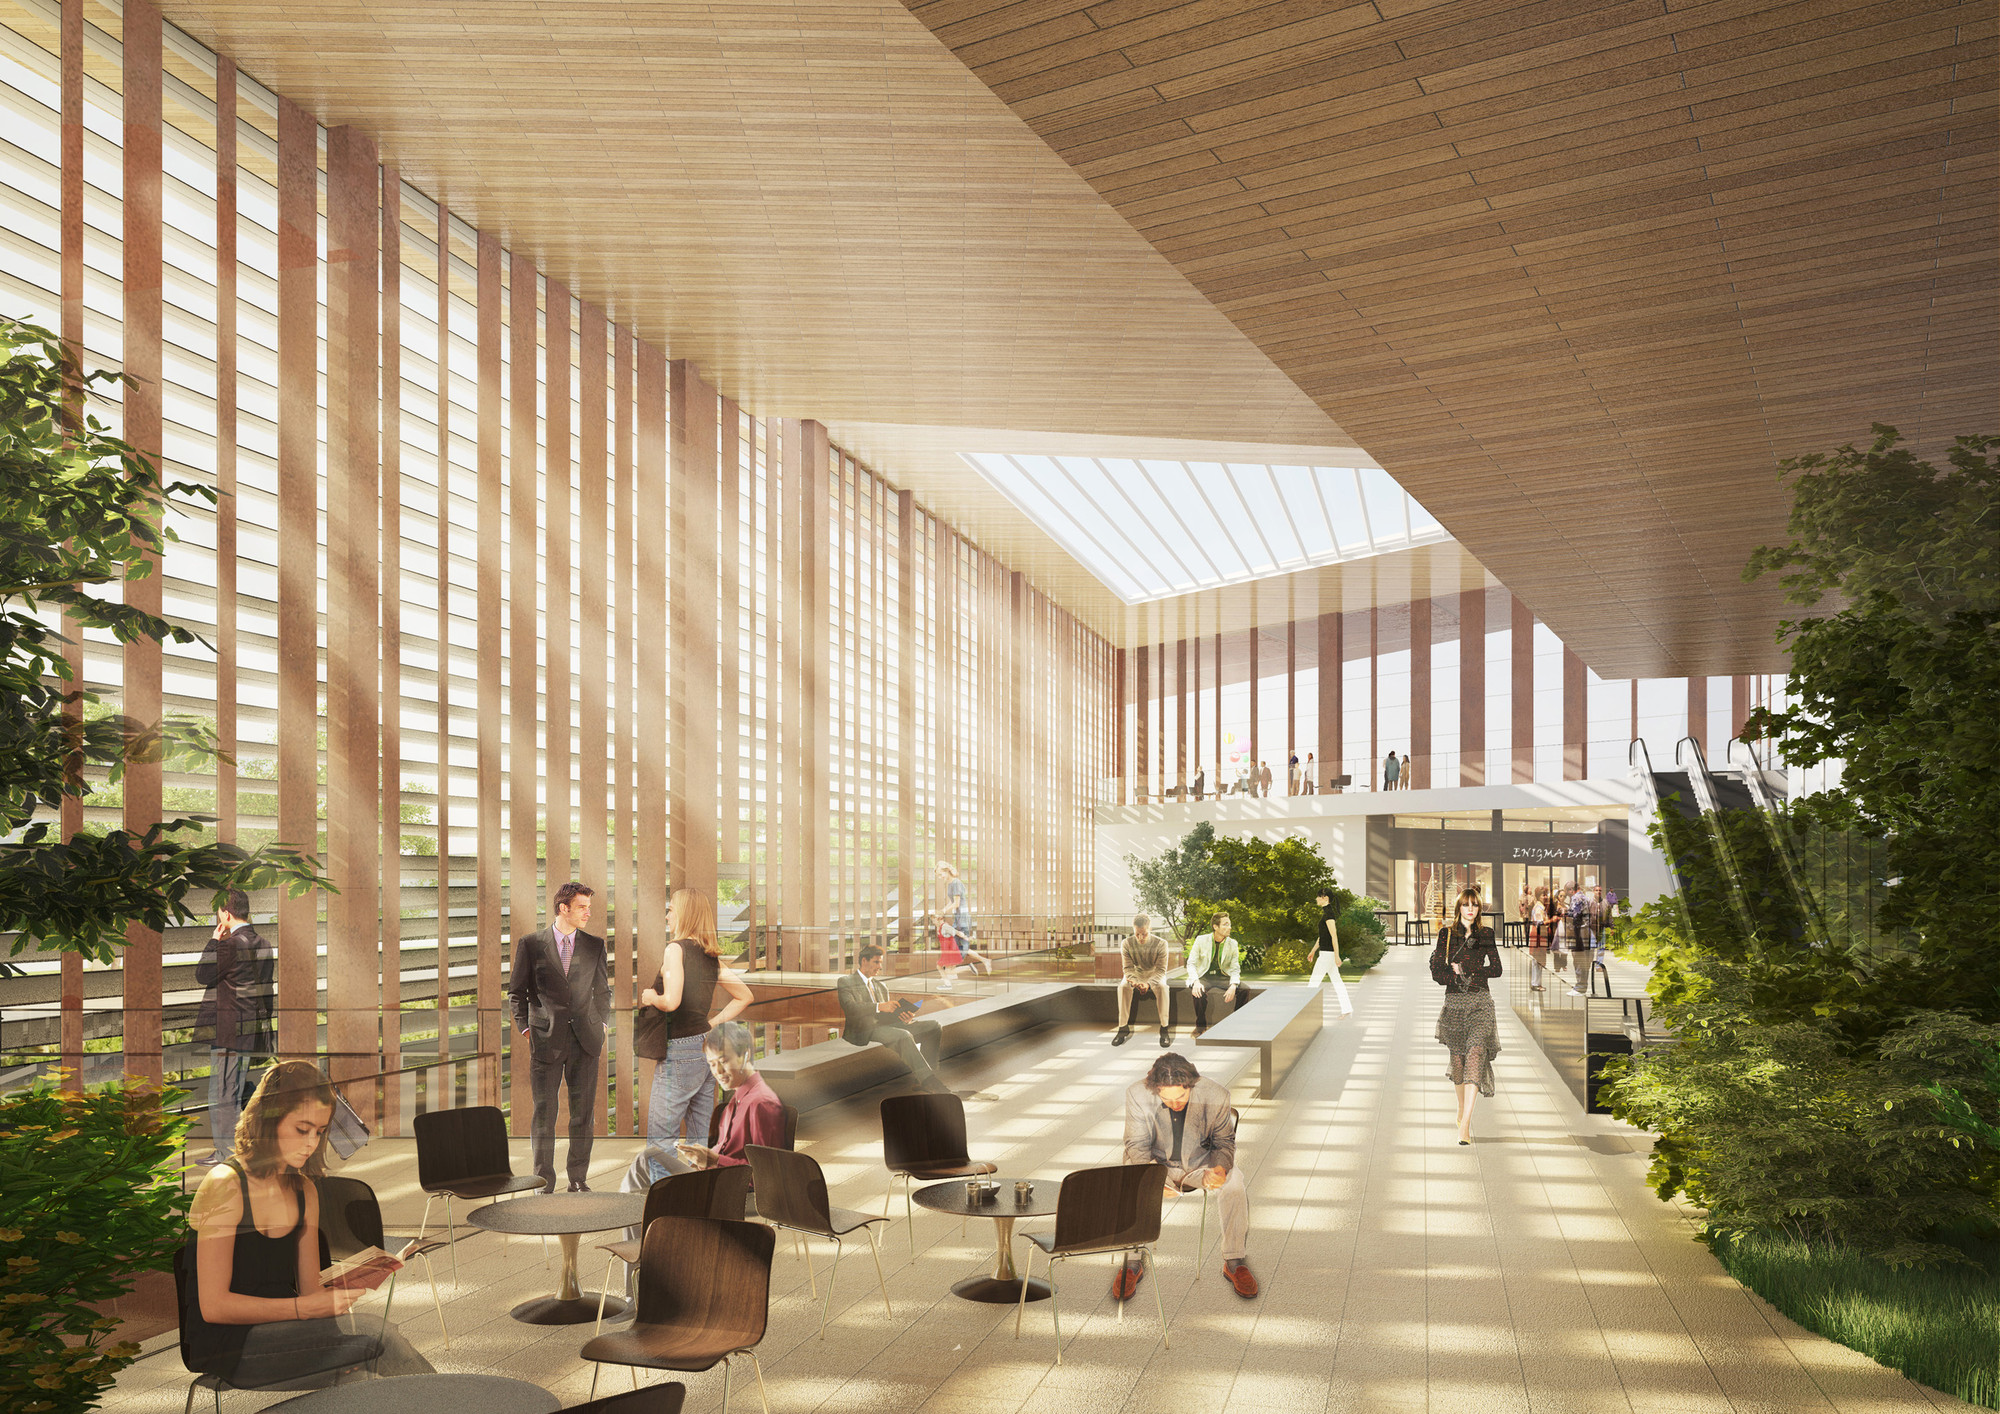 Elizabeth de Portzamparc Wins Competition to Design Le Bourget Metro Station in Paris, A large English court and a skylight to illuminate the interior. Image © Elizabeth de Portzamparc Architecte